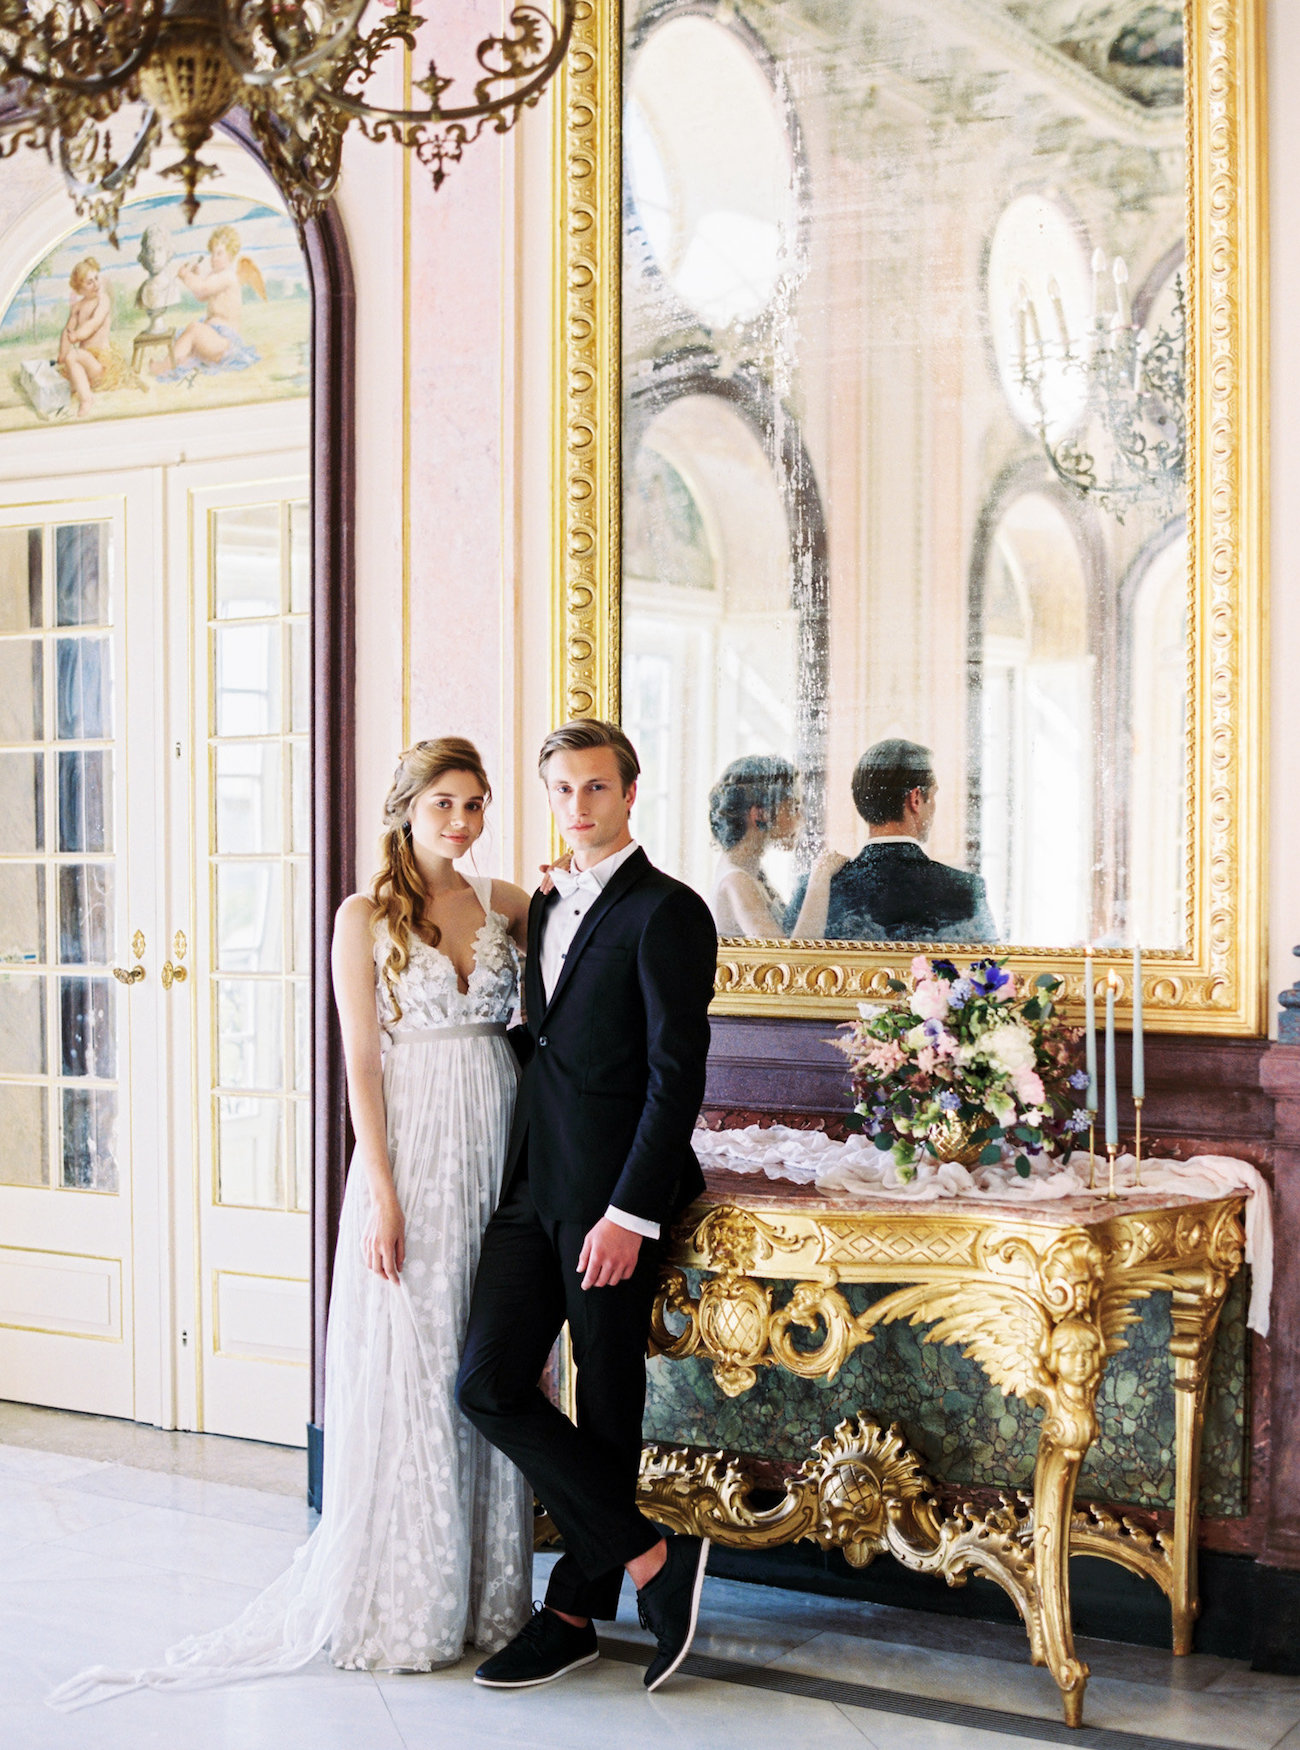 Wedding Style Shoots in a palace